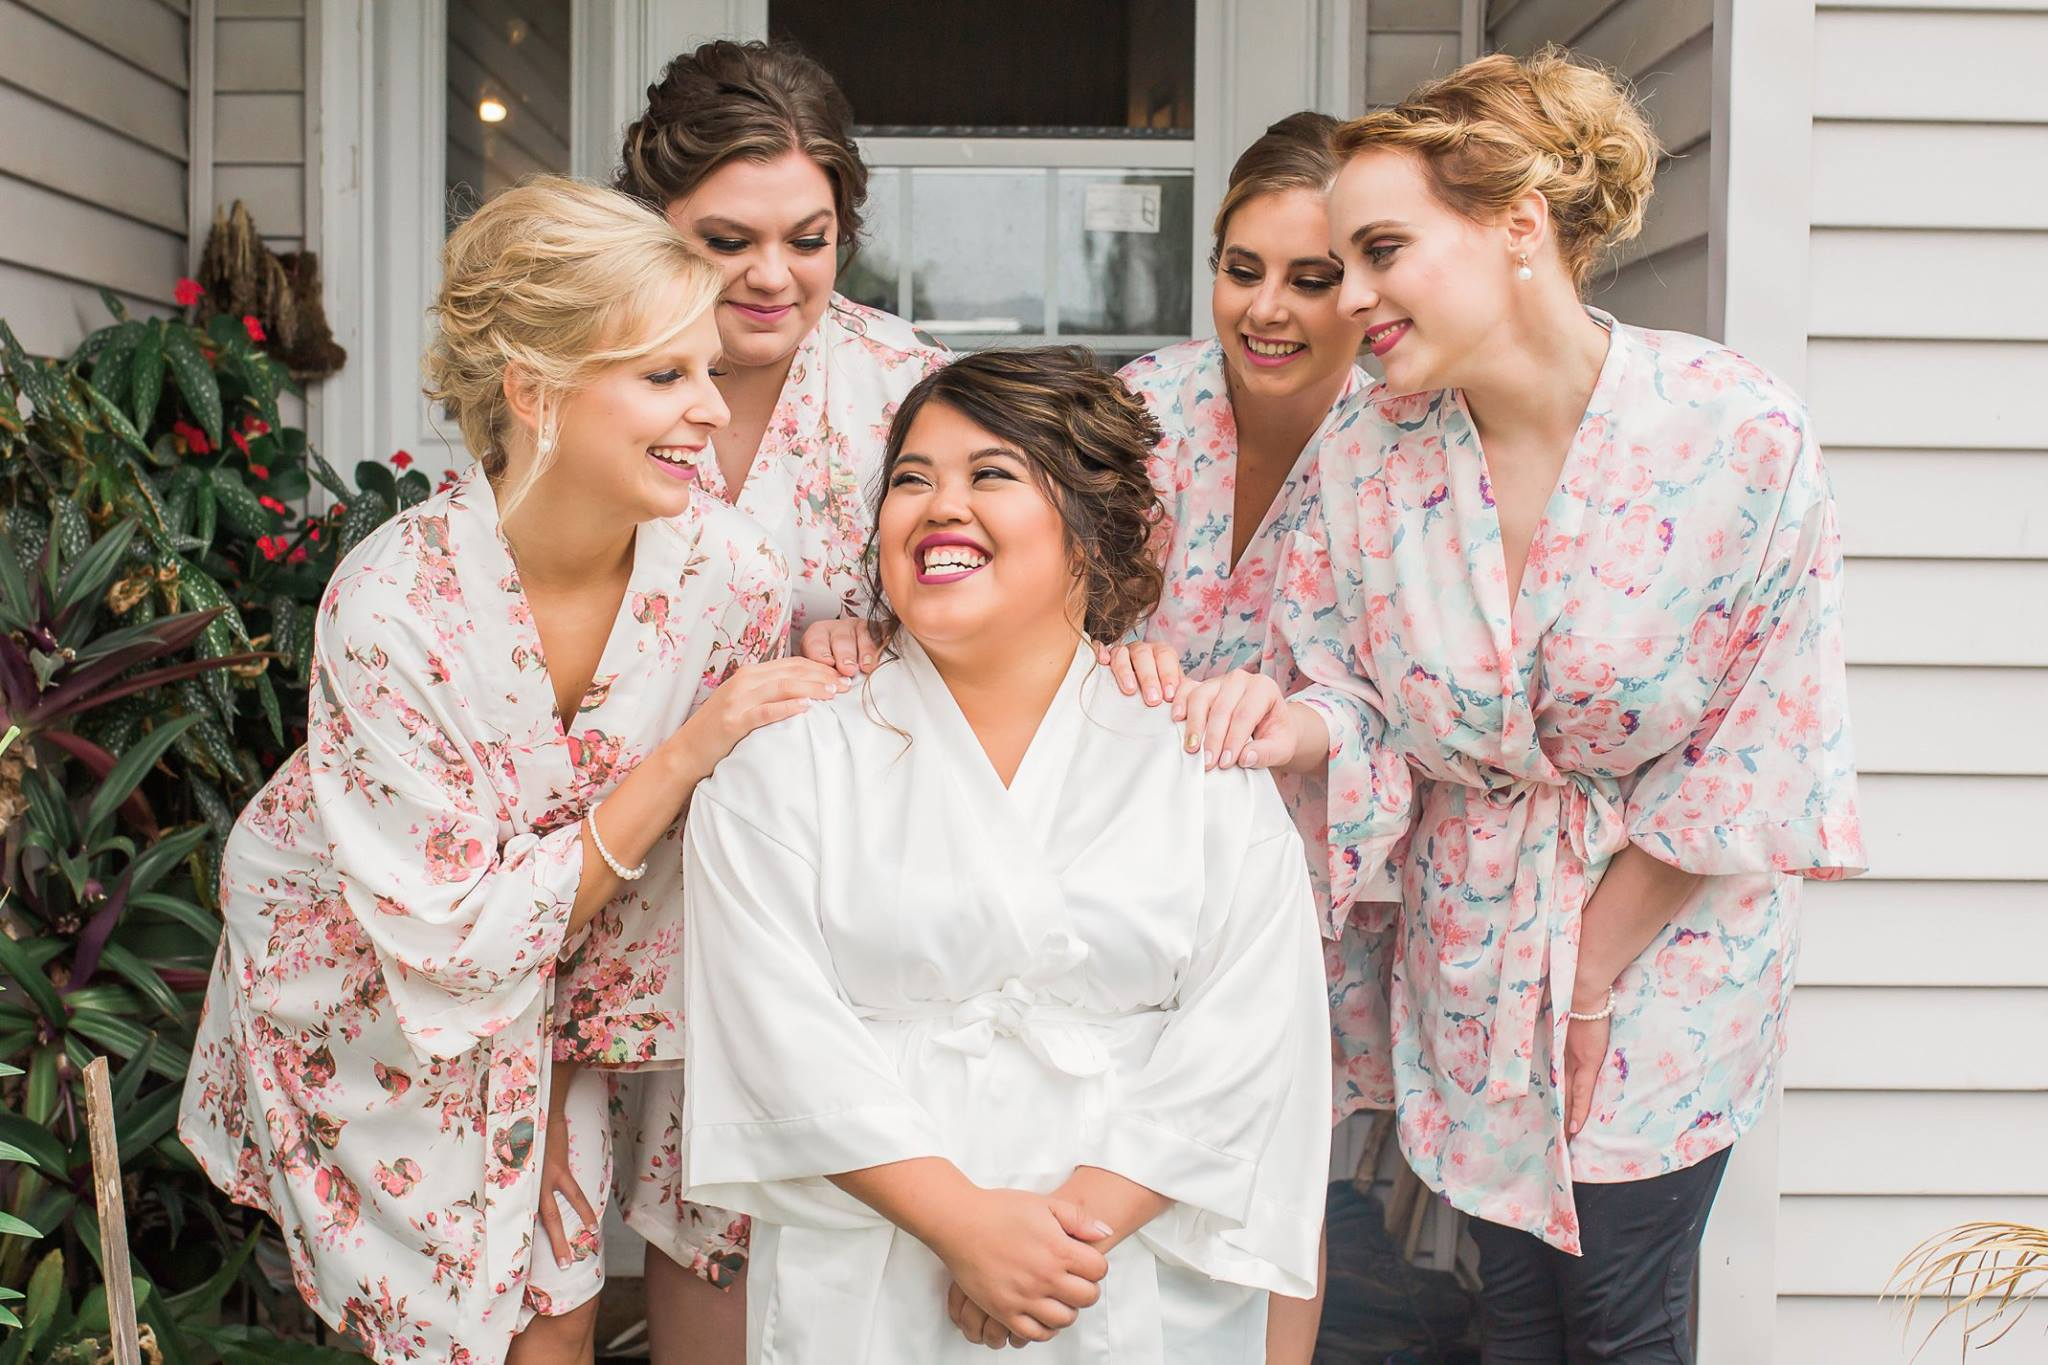 jaelei beauty >> bridal hair & makeup services in appleton